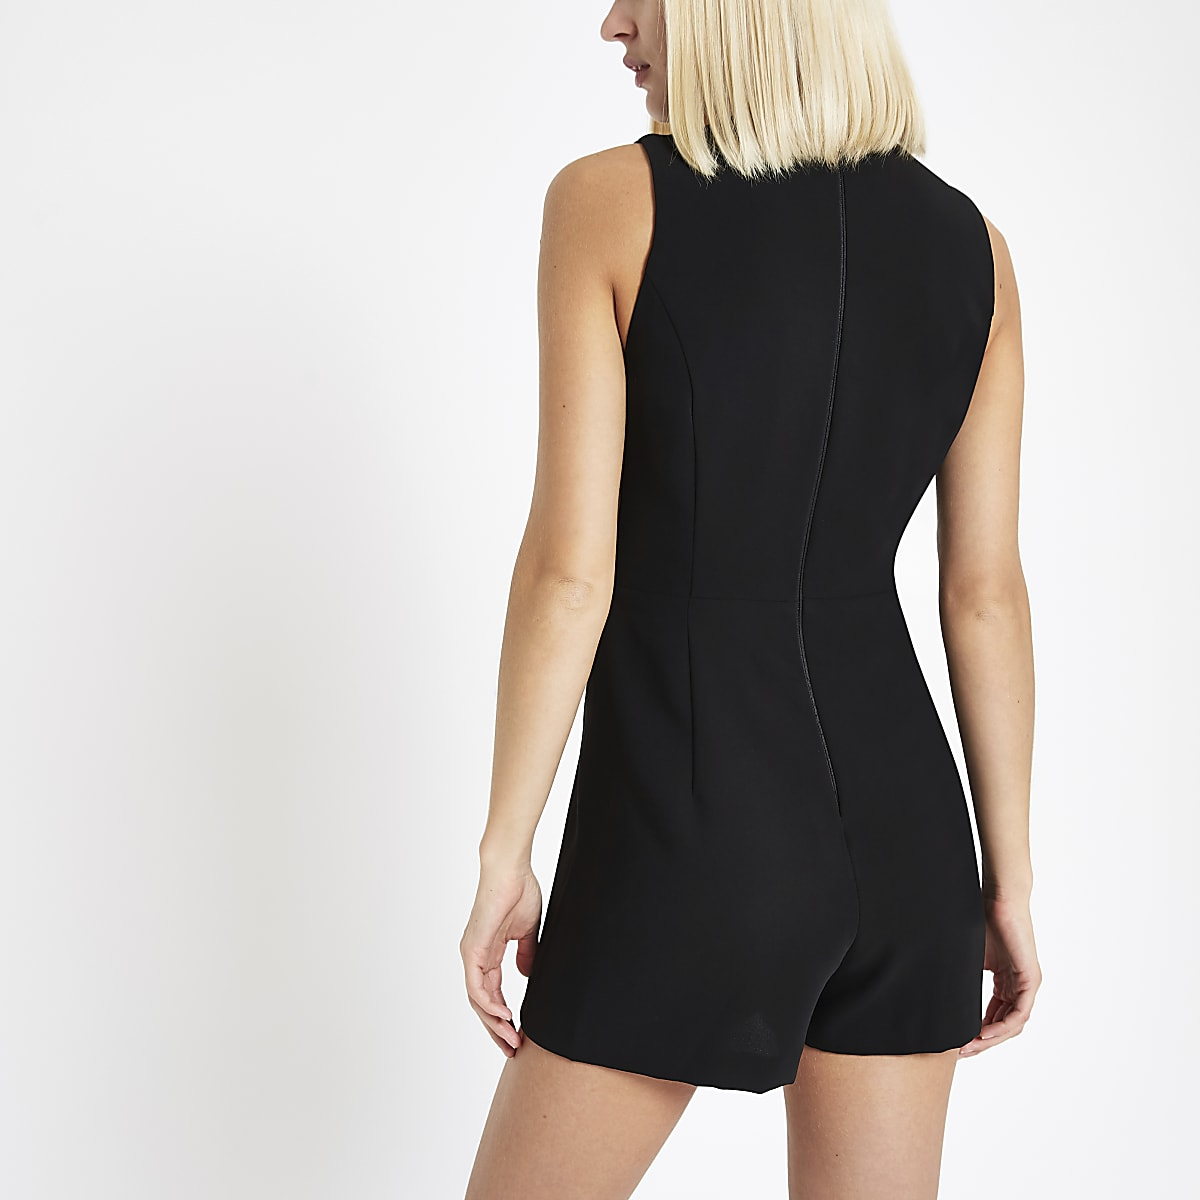 628da8bac29 Black wrap front sleeveless playsuit - Playsuits - Playsuits ...